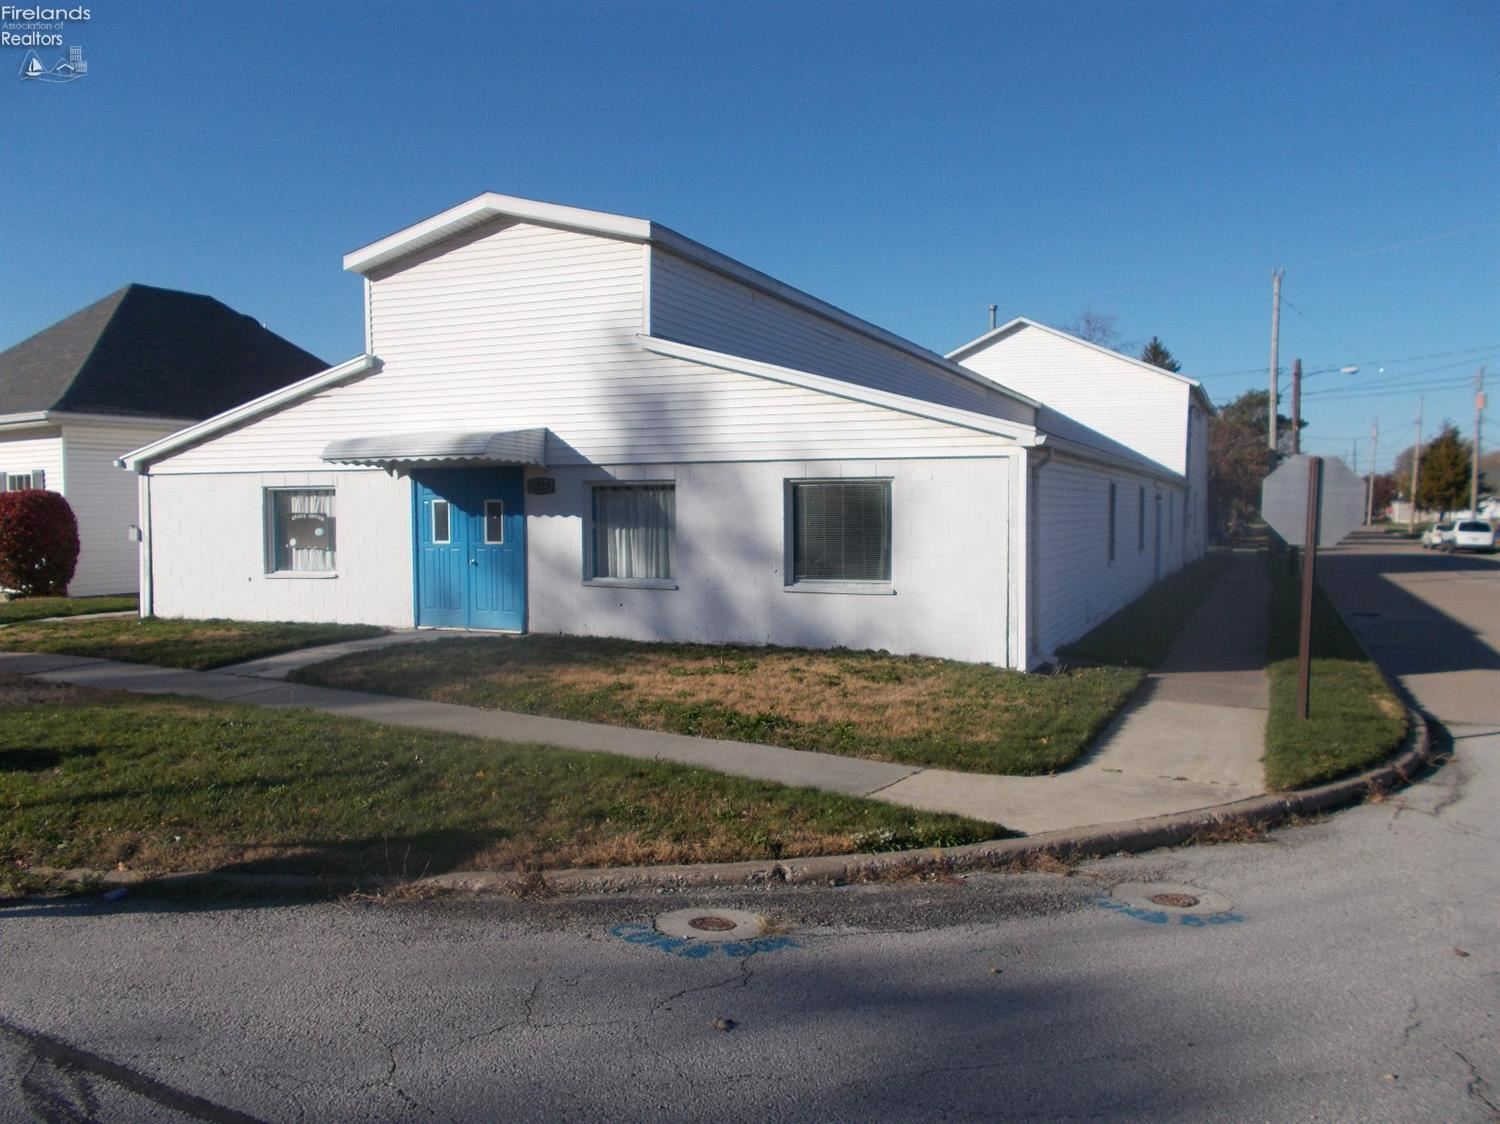 Port Clinton Oh Commercial For Sale Real Living Morgan Realty Group Real Living Real Estate